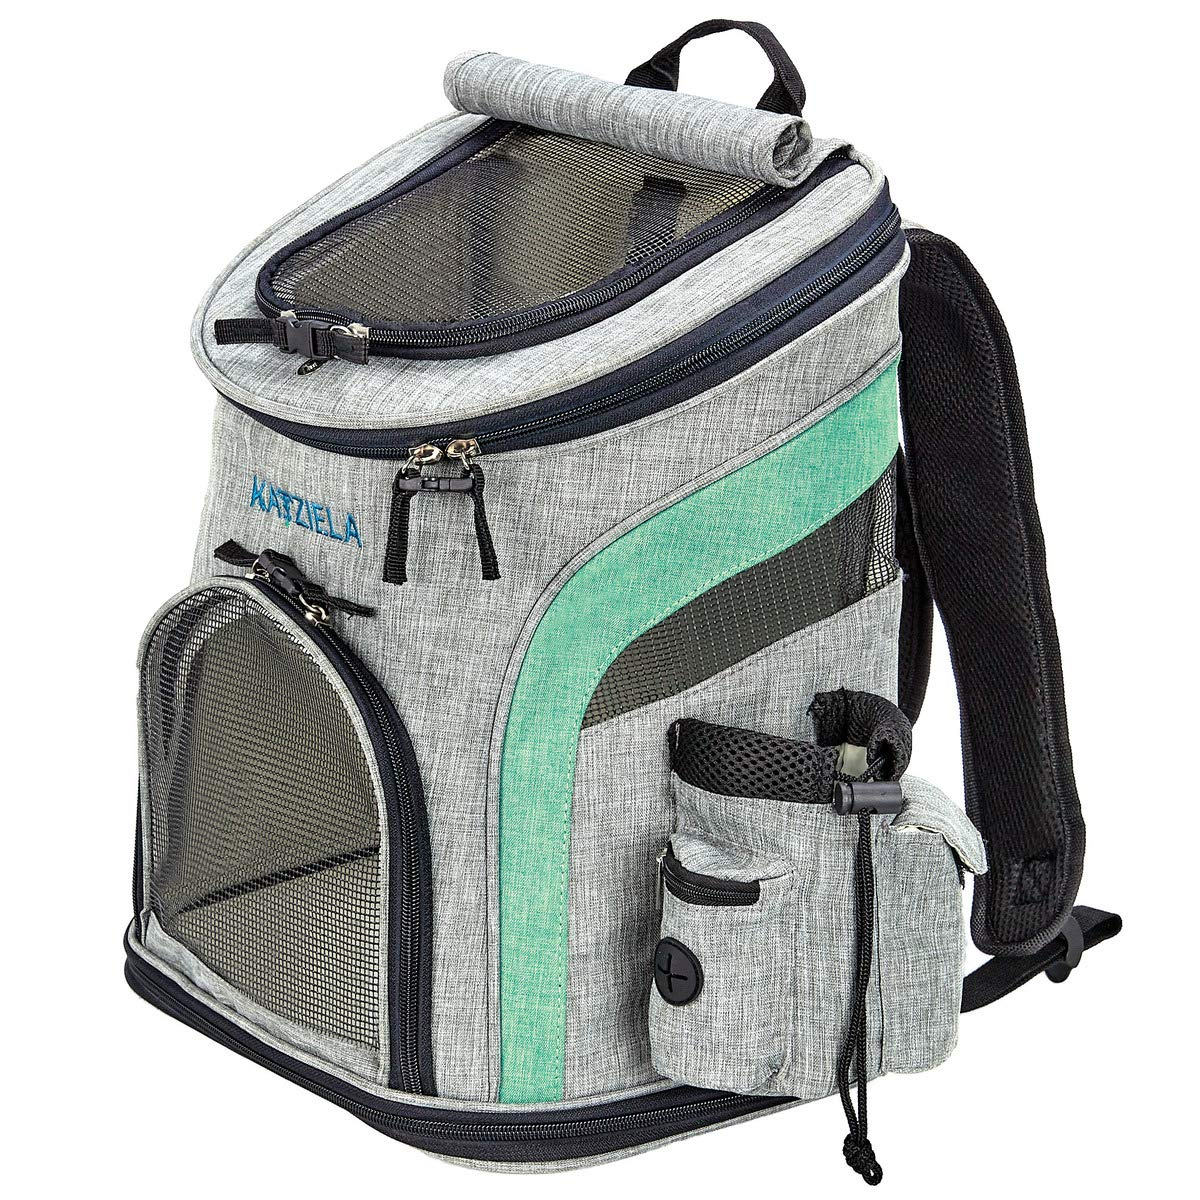 02e4f6901f39 Katziela Pet Carrier - Soft Sided, Airline Approved Carrying Bag for Small  Dogs and Cats, Front, Side and Top Mesh Ventilation Windows, Storage Pocket  ...